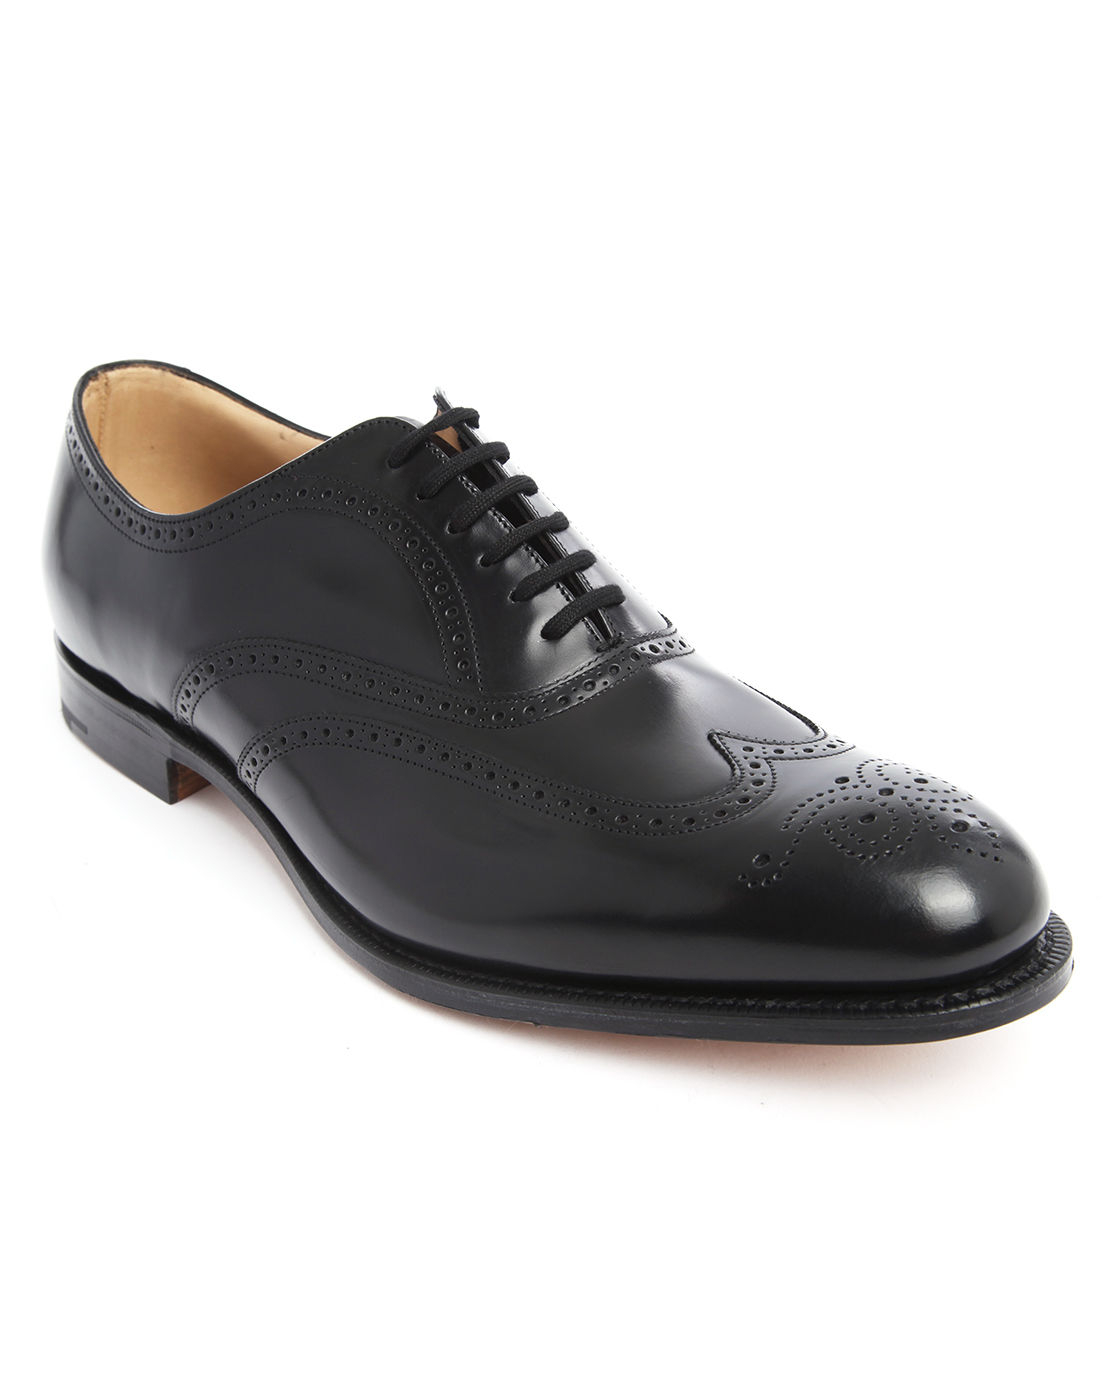 Moca Women's Oxford Black Oxford Shoe, Size: 10 This Moca's Oxford Faux leather suede high fashion crystals through out oxford is great for all ages. Looks great with any outfit especially with slacks, leather pants, suit pants, shorts and more.